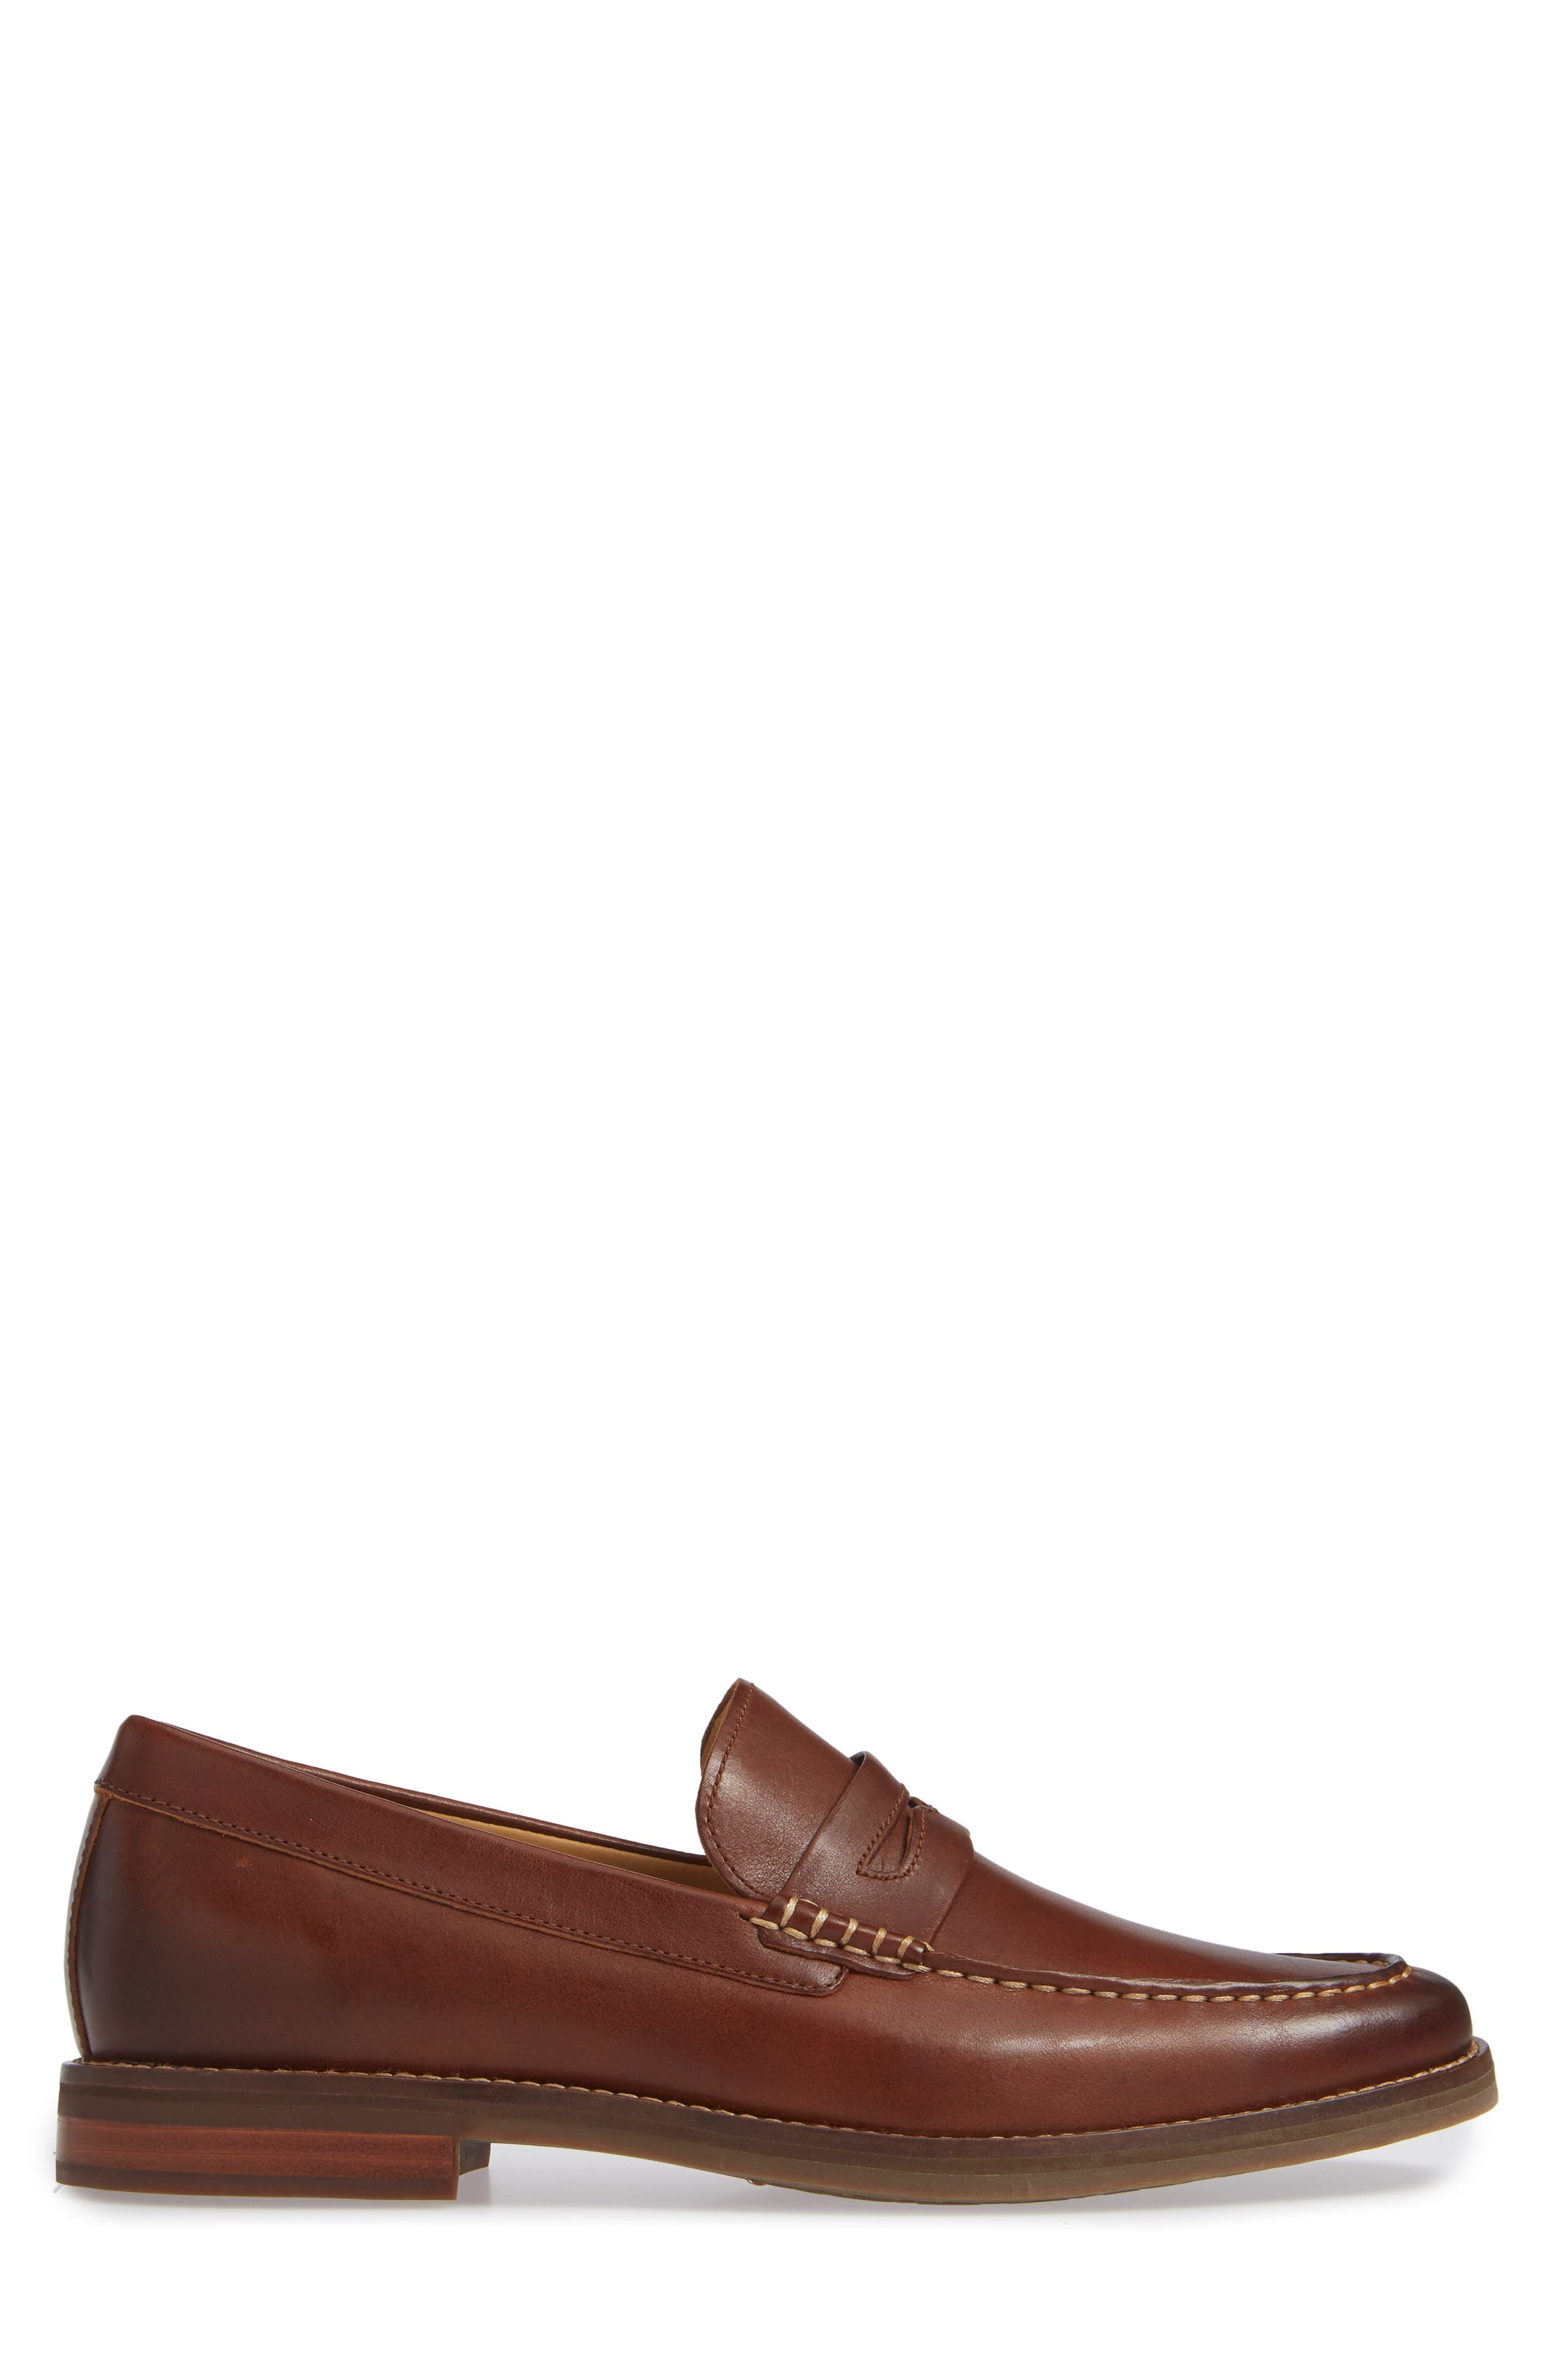 SPERRY, Gold Cup Exeter Penny Loafer, Alternate thumbnail 3, color, TAN